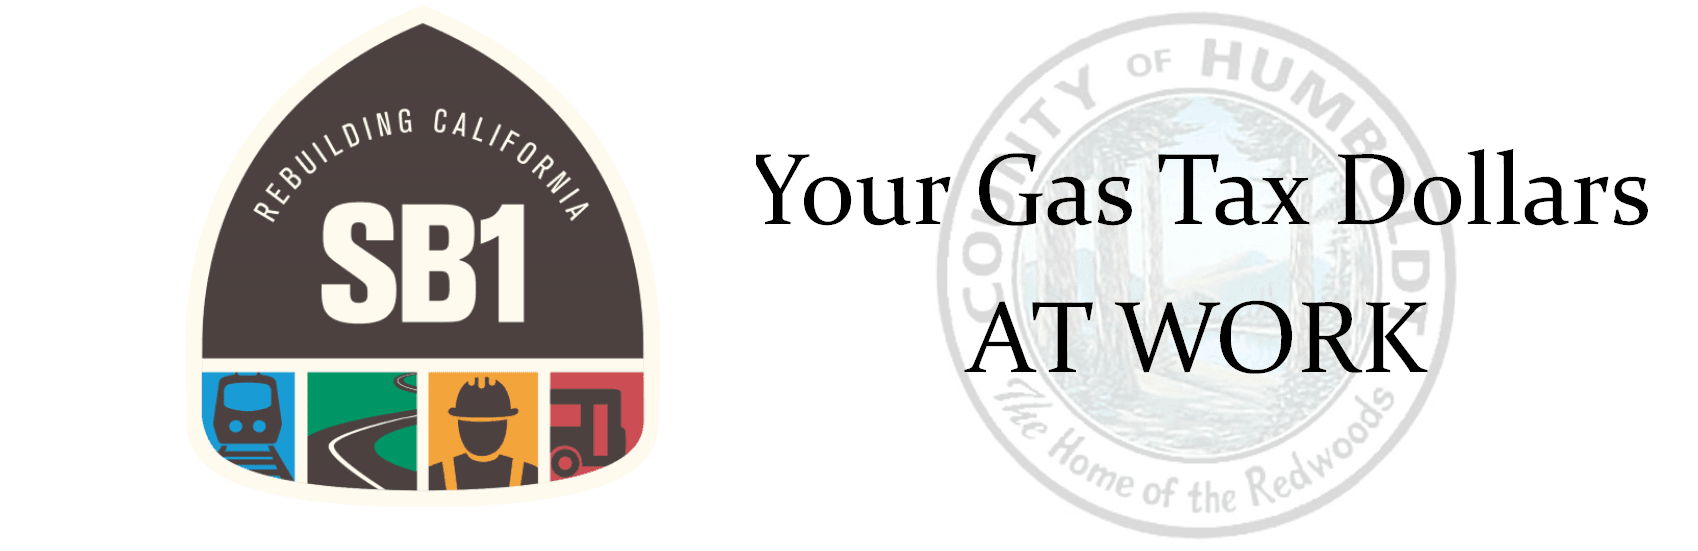 SB1 Gas Tax and Humboldt County logo